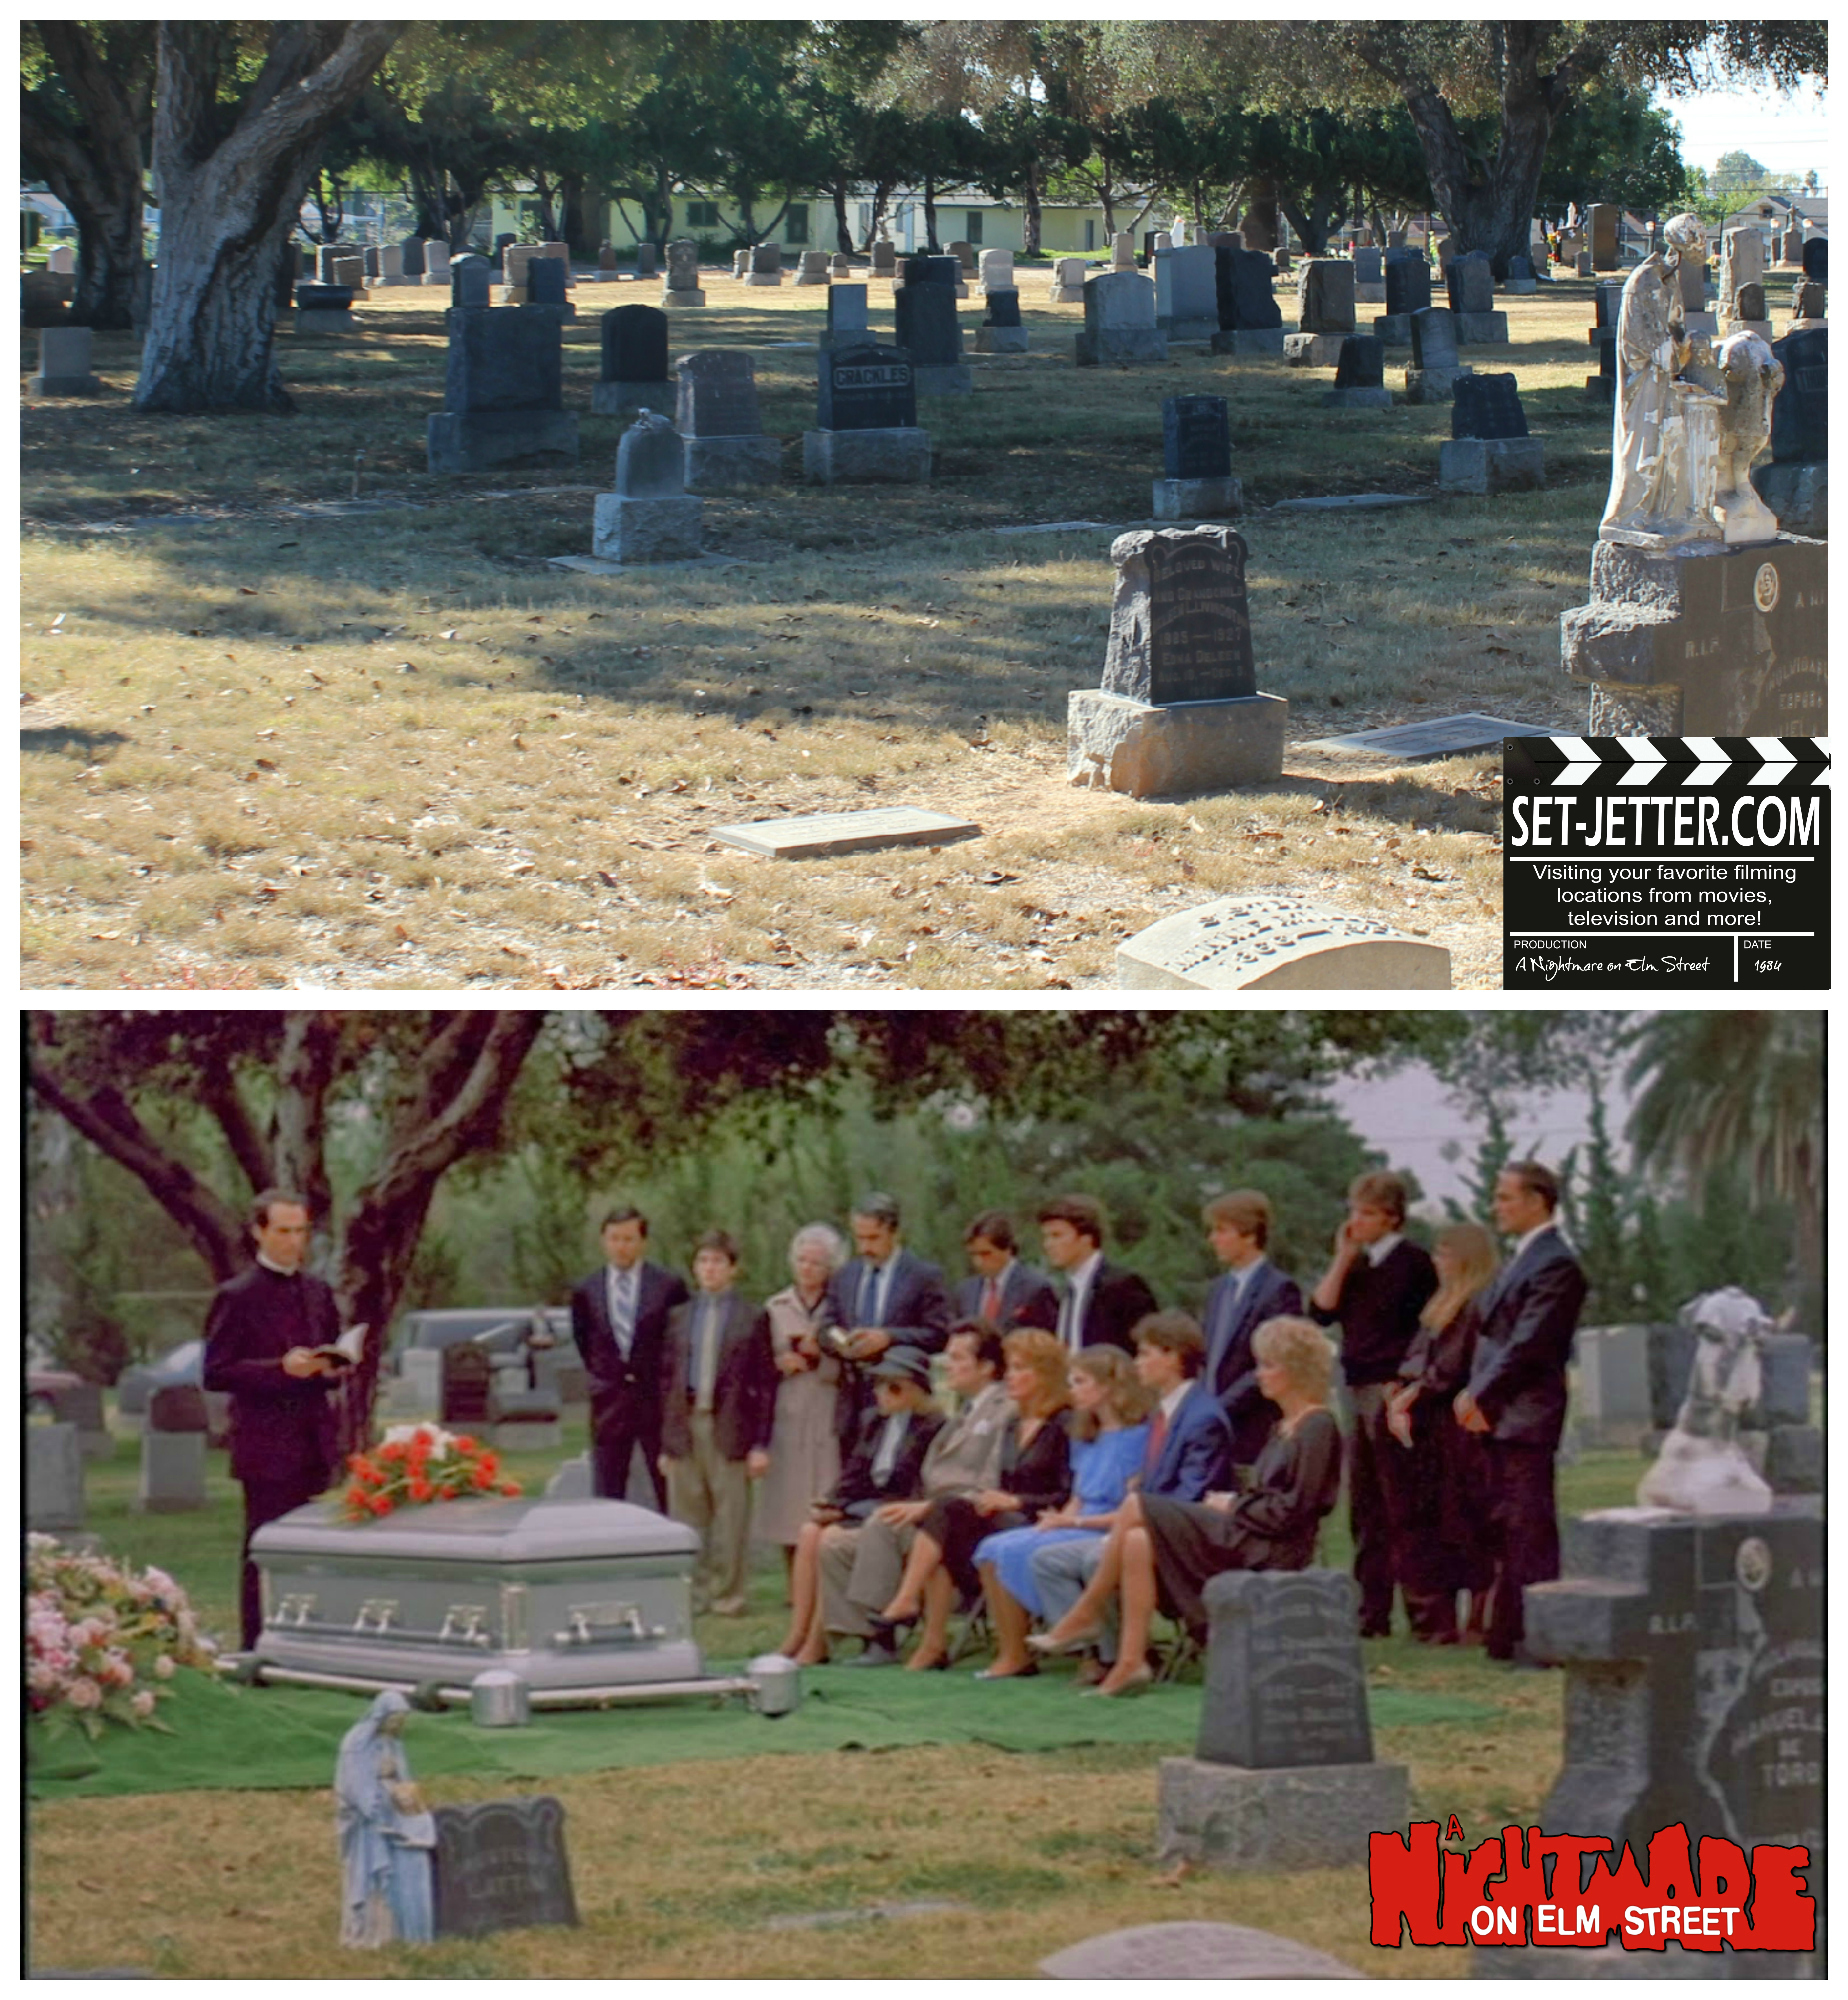 Nightmare on Elm Street comparison 23.jpg